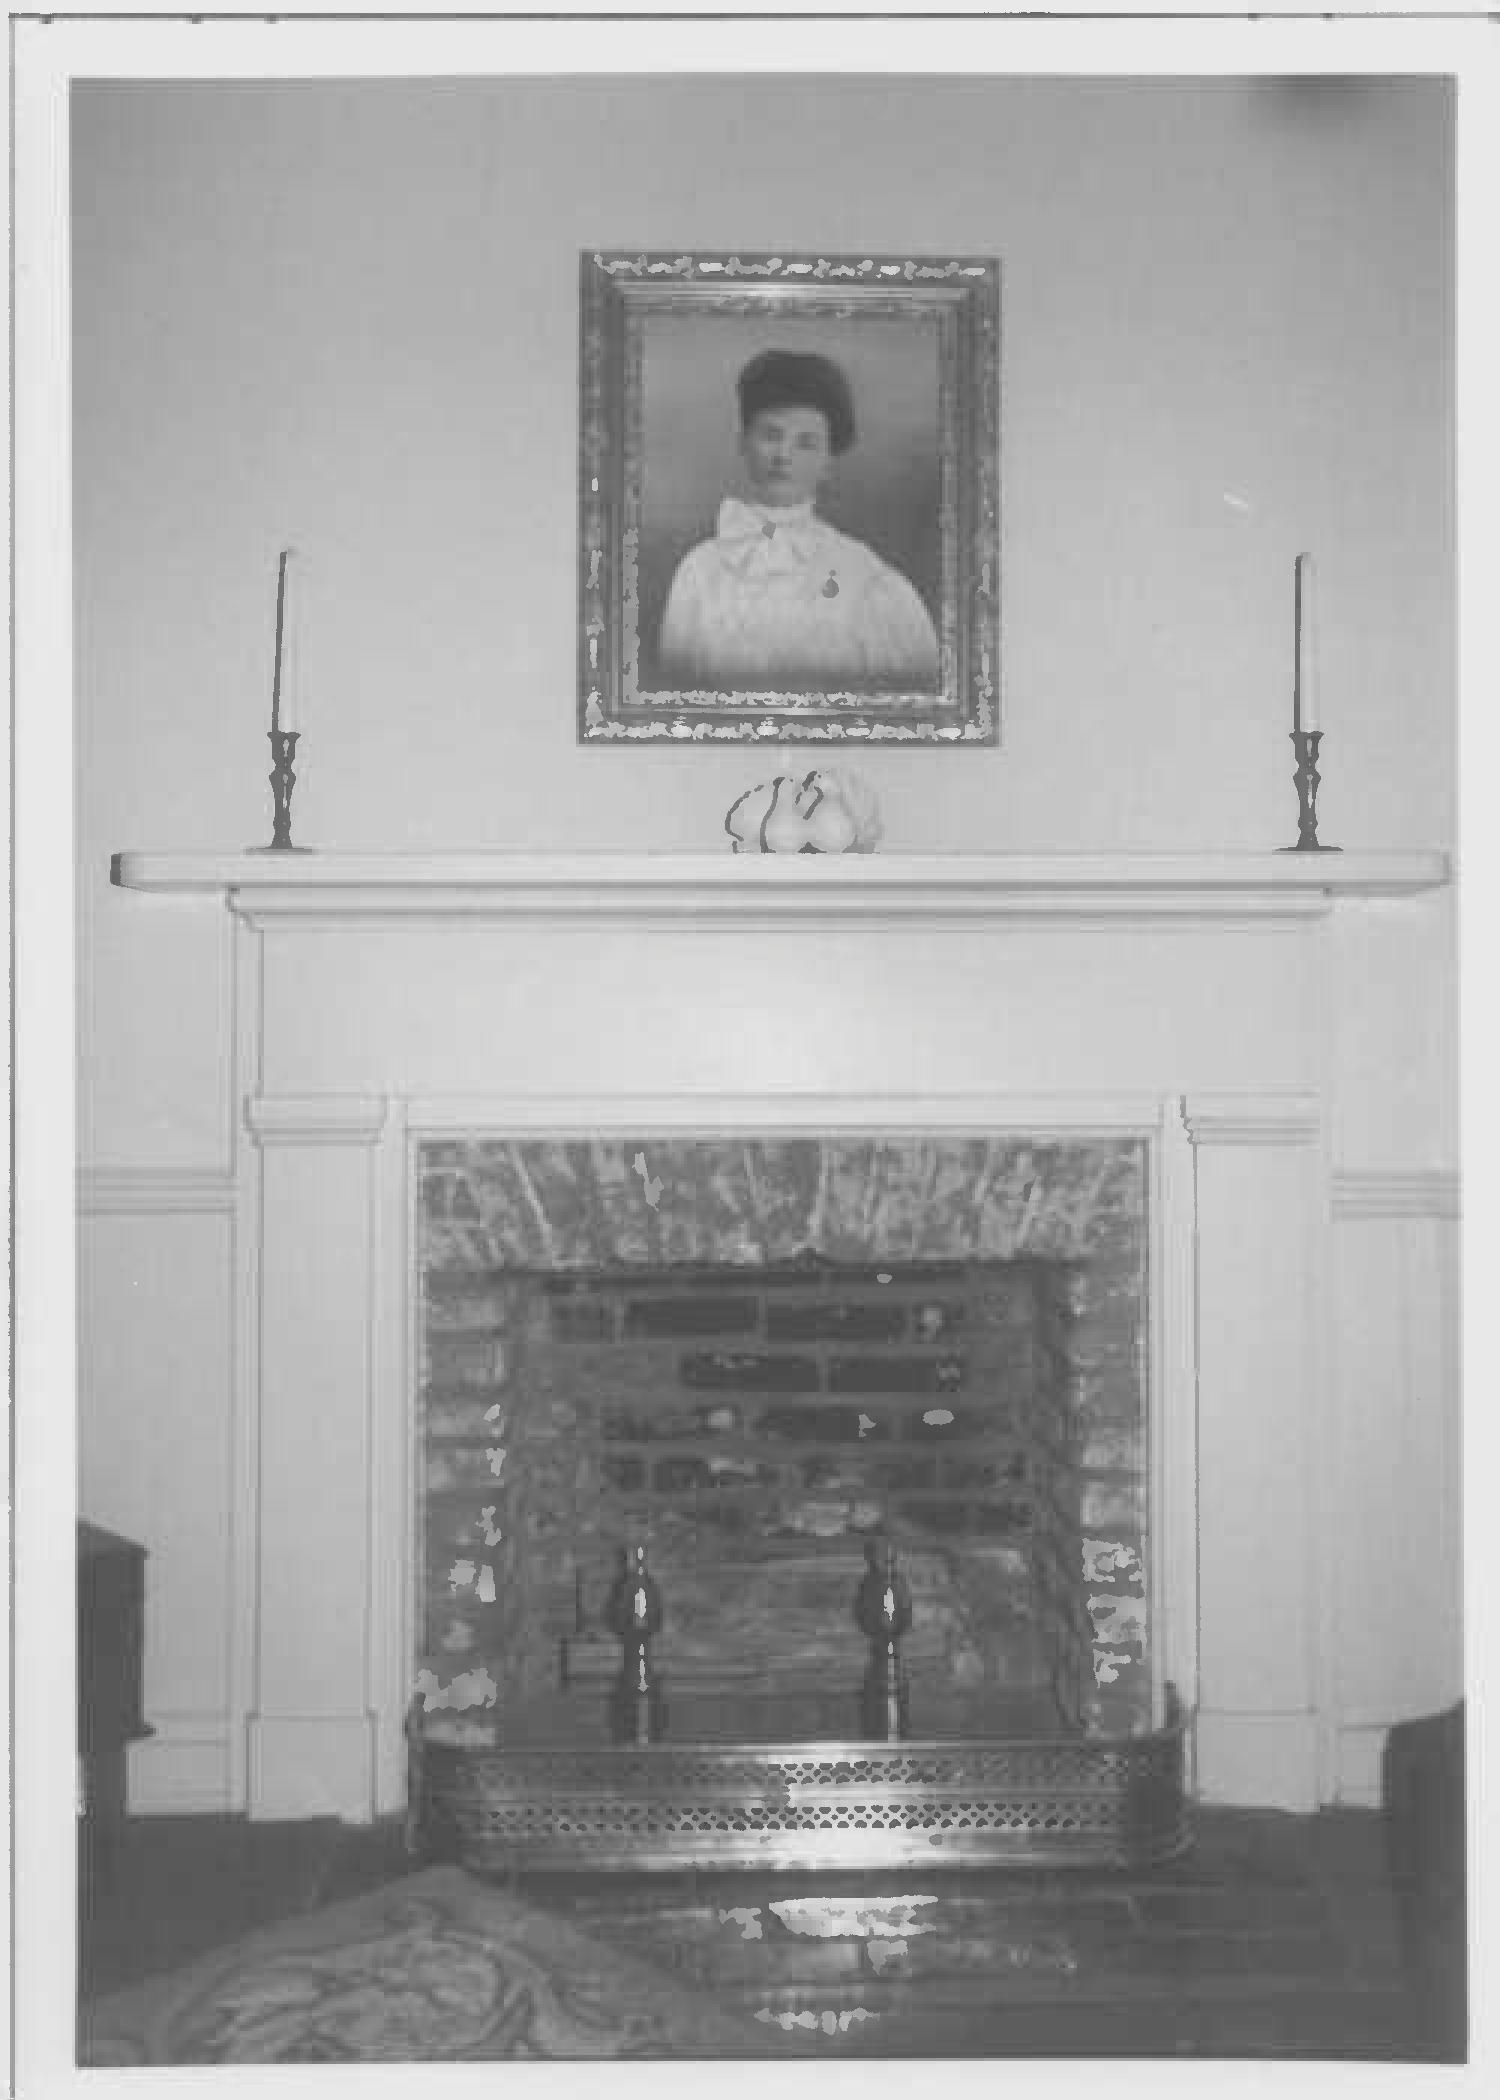 Mantel, north room, second floor of main block, Whites Hall in Maryland